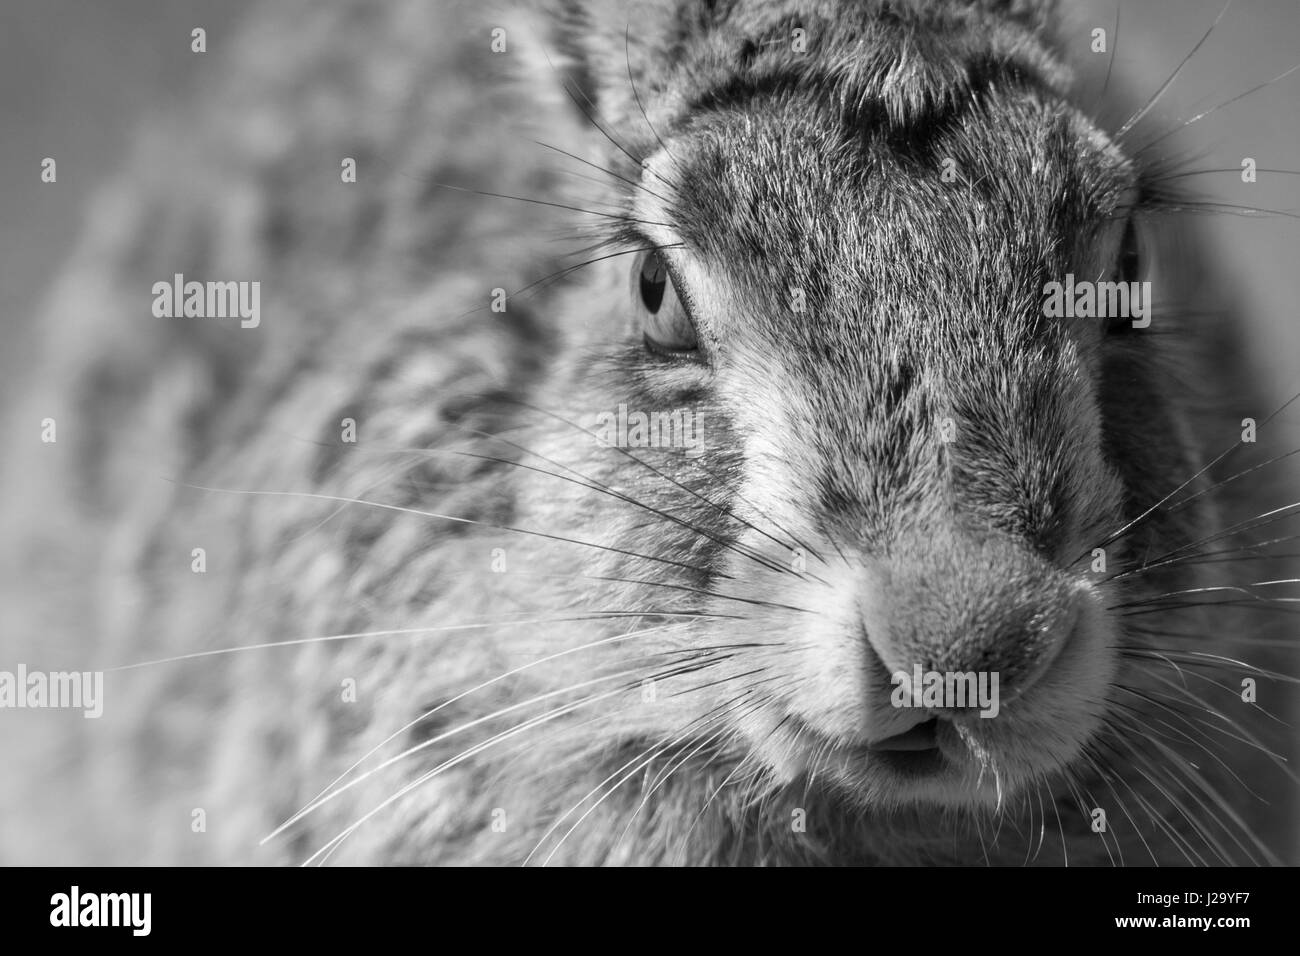 Brown Hare  adult close up in black and white  Powys, Wales, UK - Stock Image